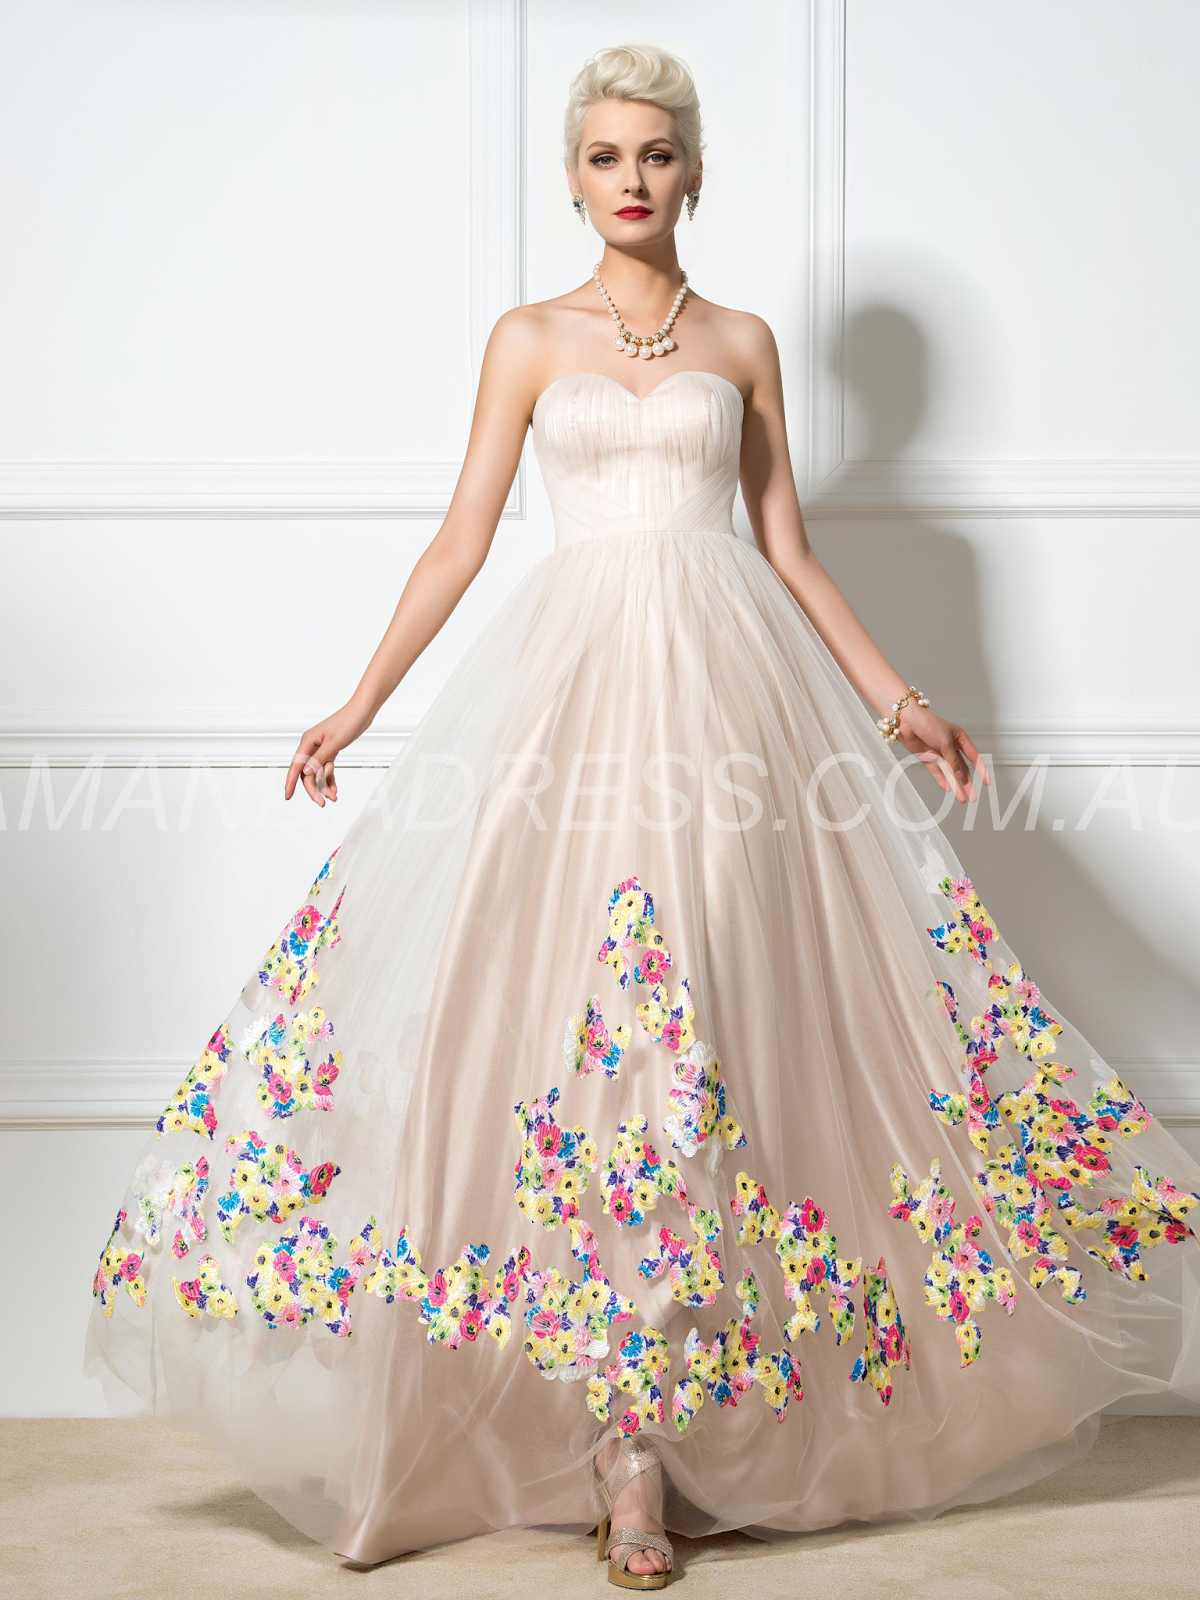 Glamorous & Dramatic Pink Prom Natural A-line Spring Summer Sweetheart Dress